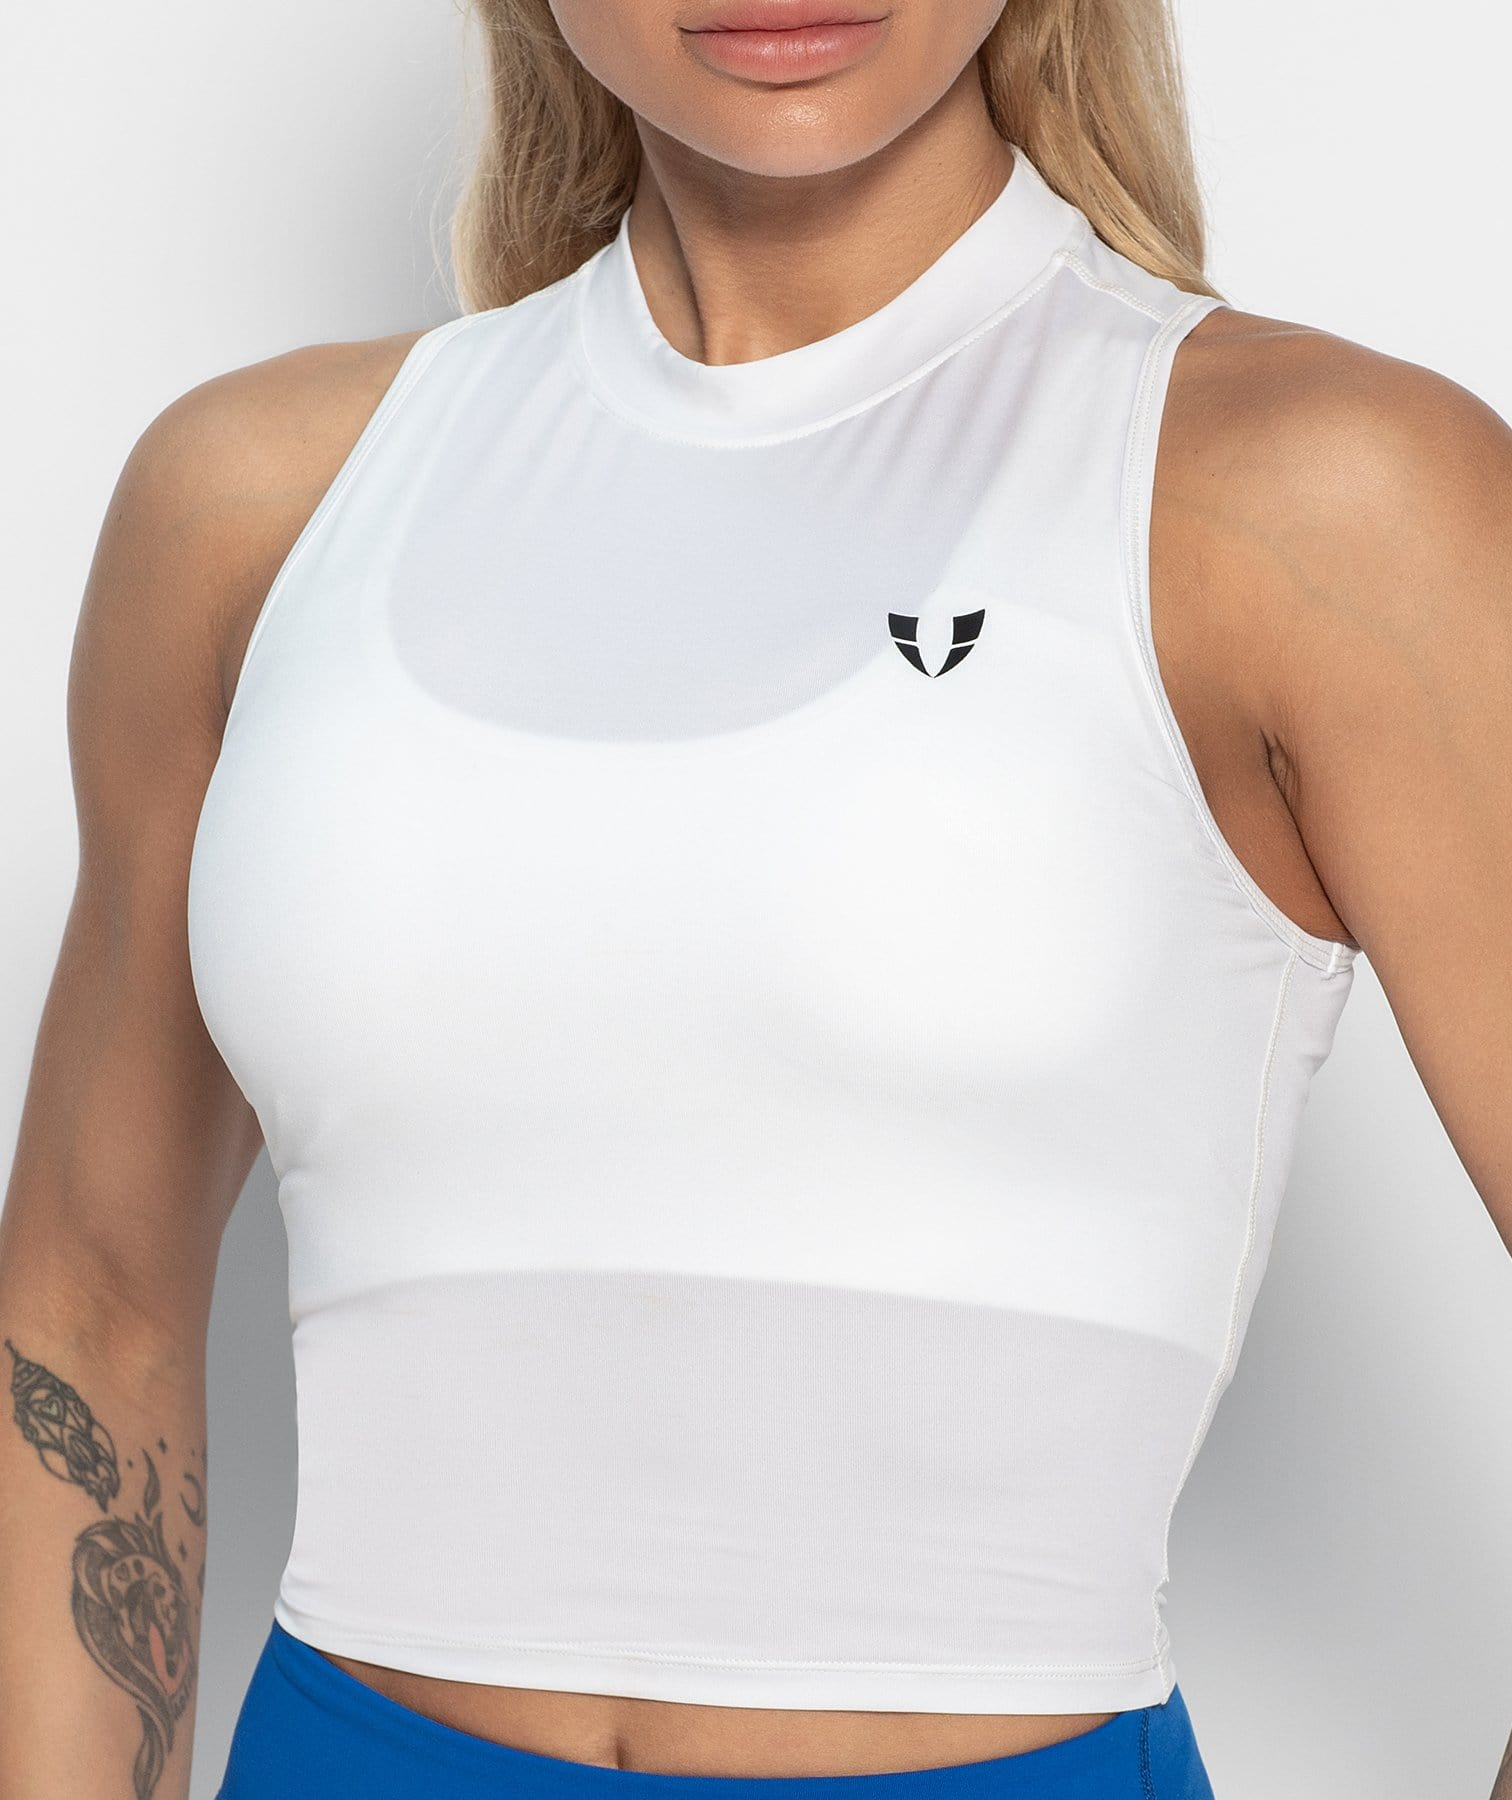 High Neck Vest - White - Firm Abs Fitness